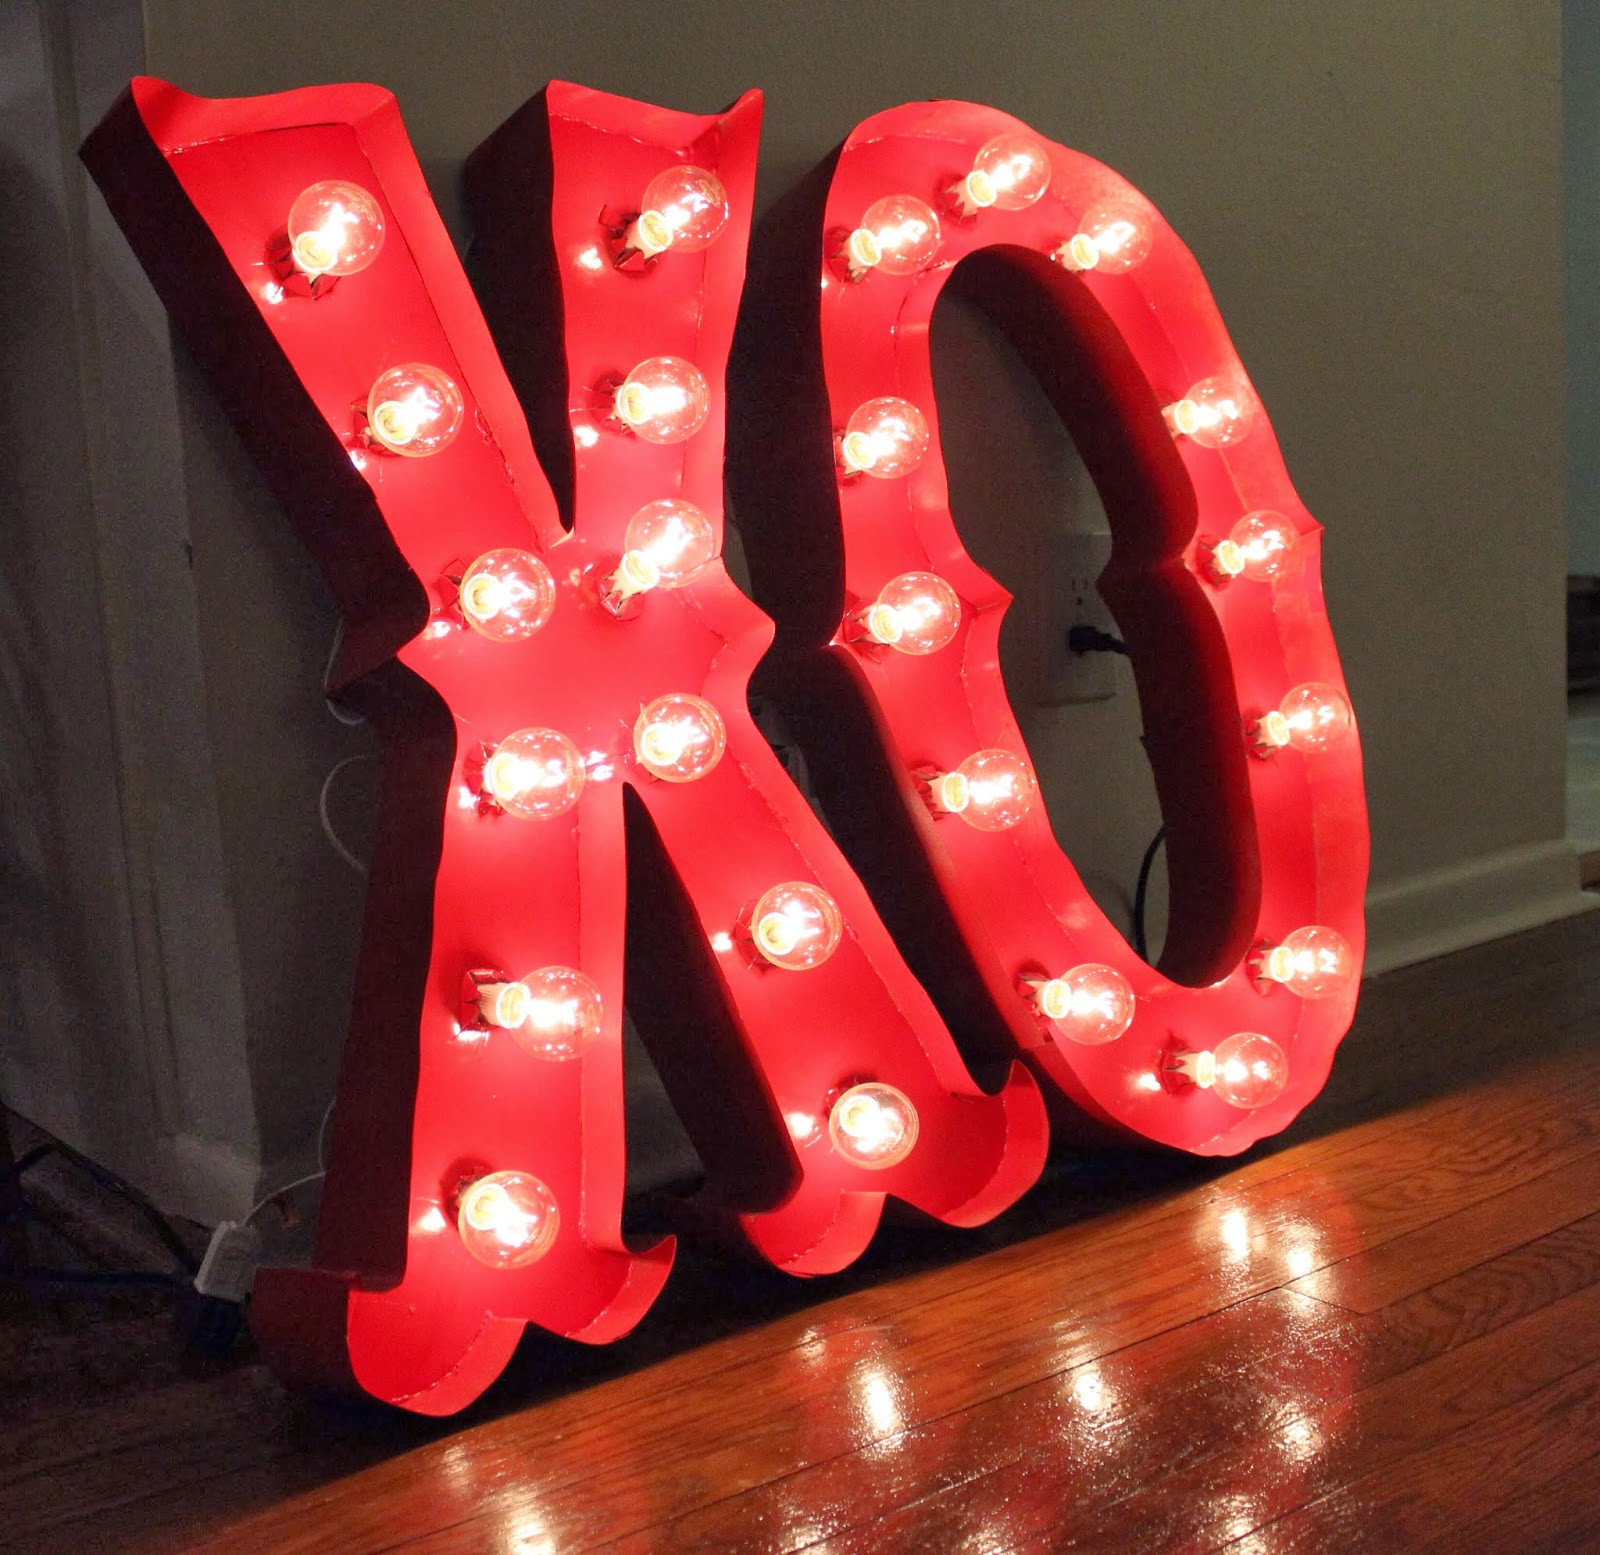 Best ideas about Light Up Letters DIY . Save or Pin Lola Tangled How to Make DIY Light Up Marquee Letters Now.